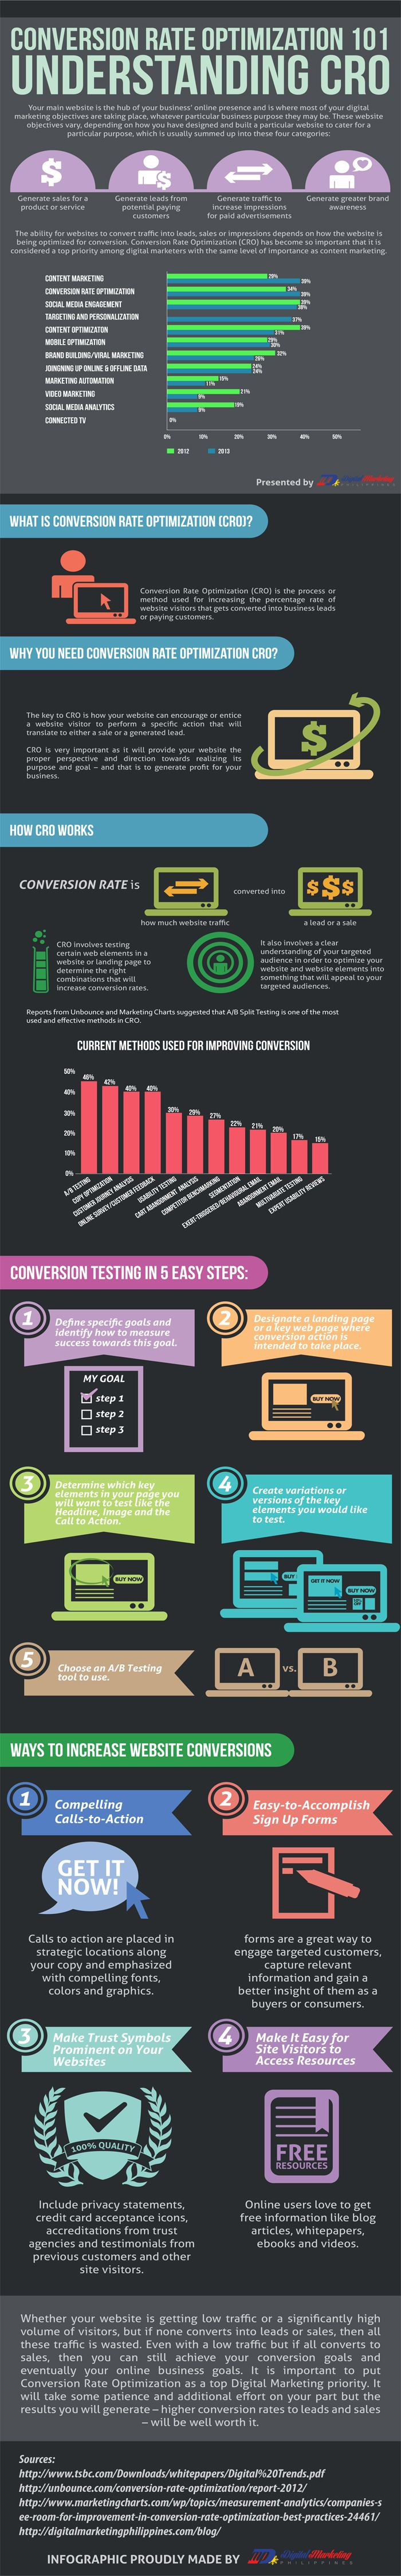 #Conversion Rate Optimization 101 - Understanding CRO #marketing #socialmedia #branding